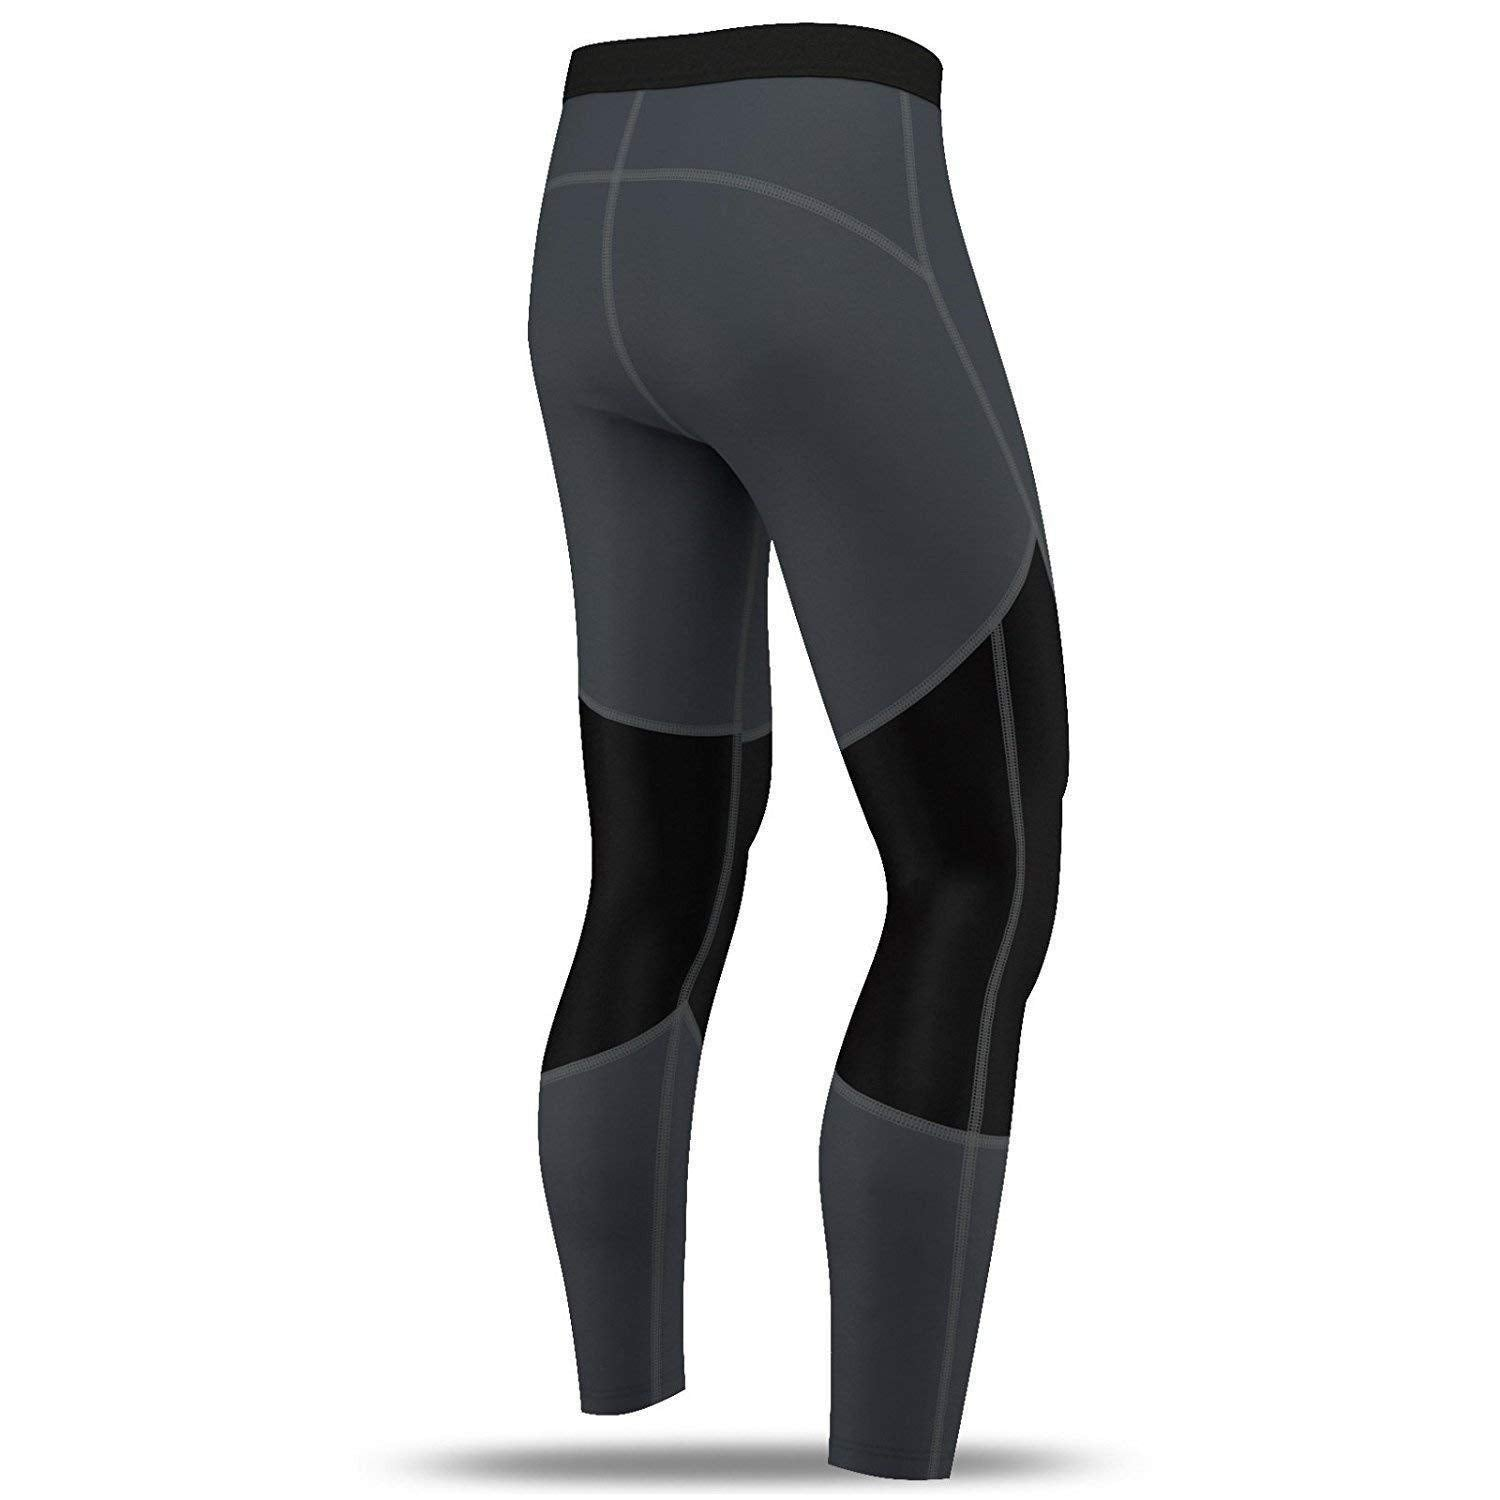 DiDOO Men's Thermal Compression Base Layer Leggings